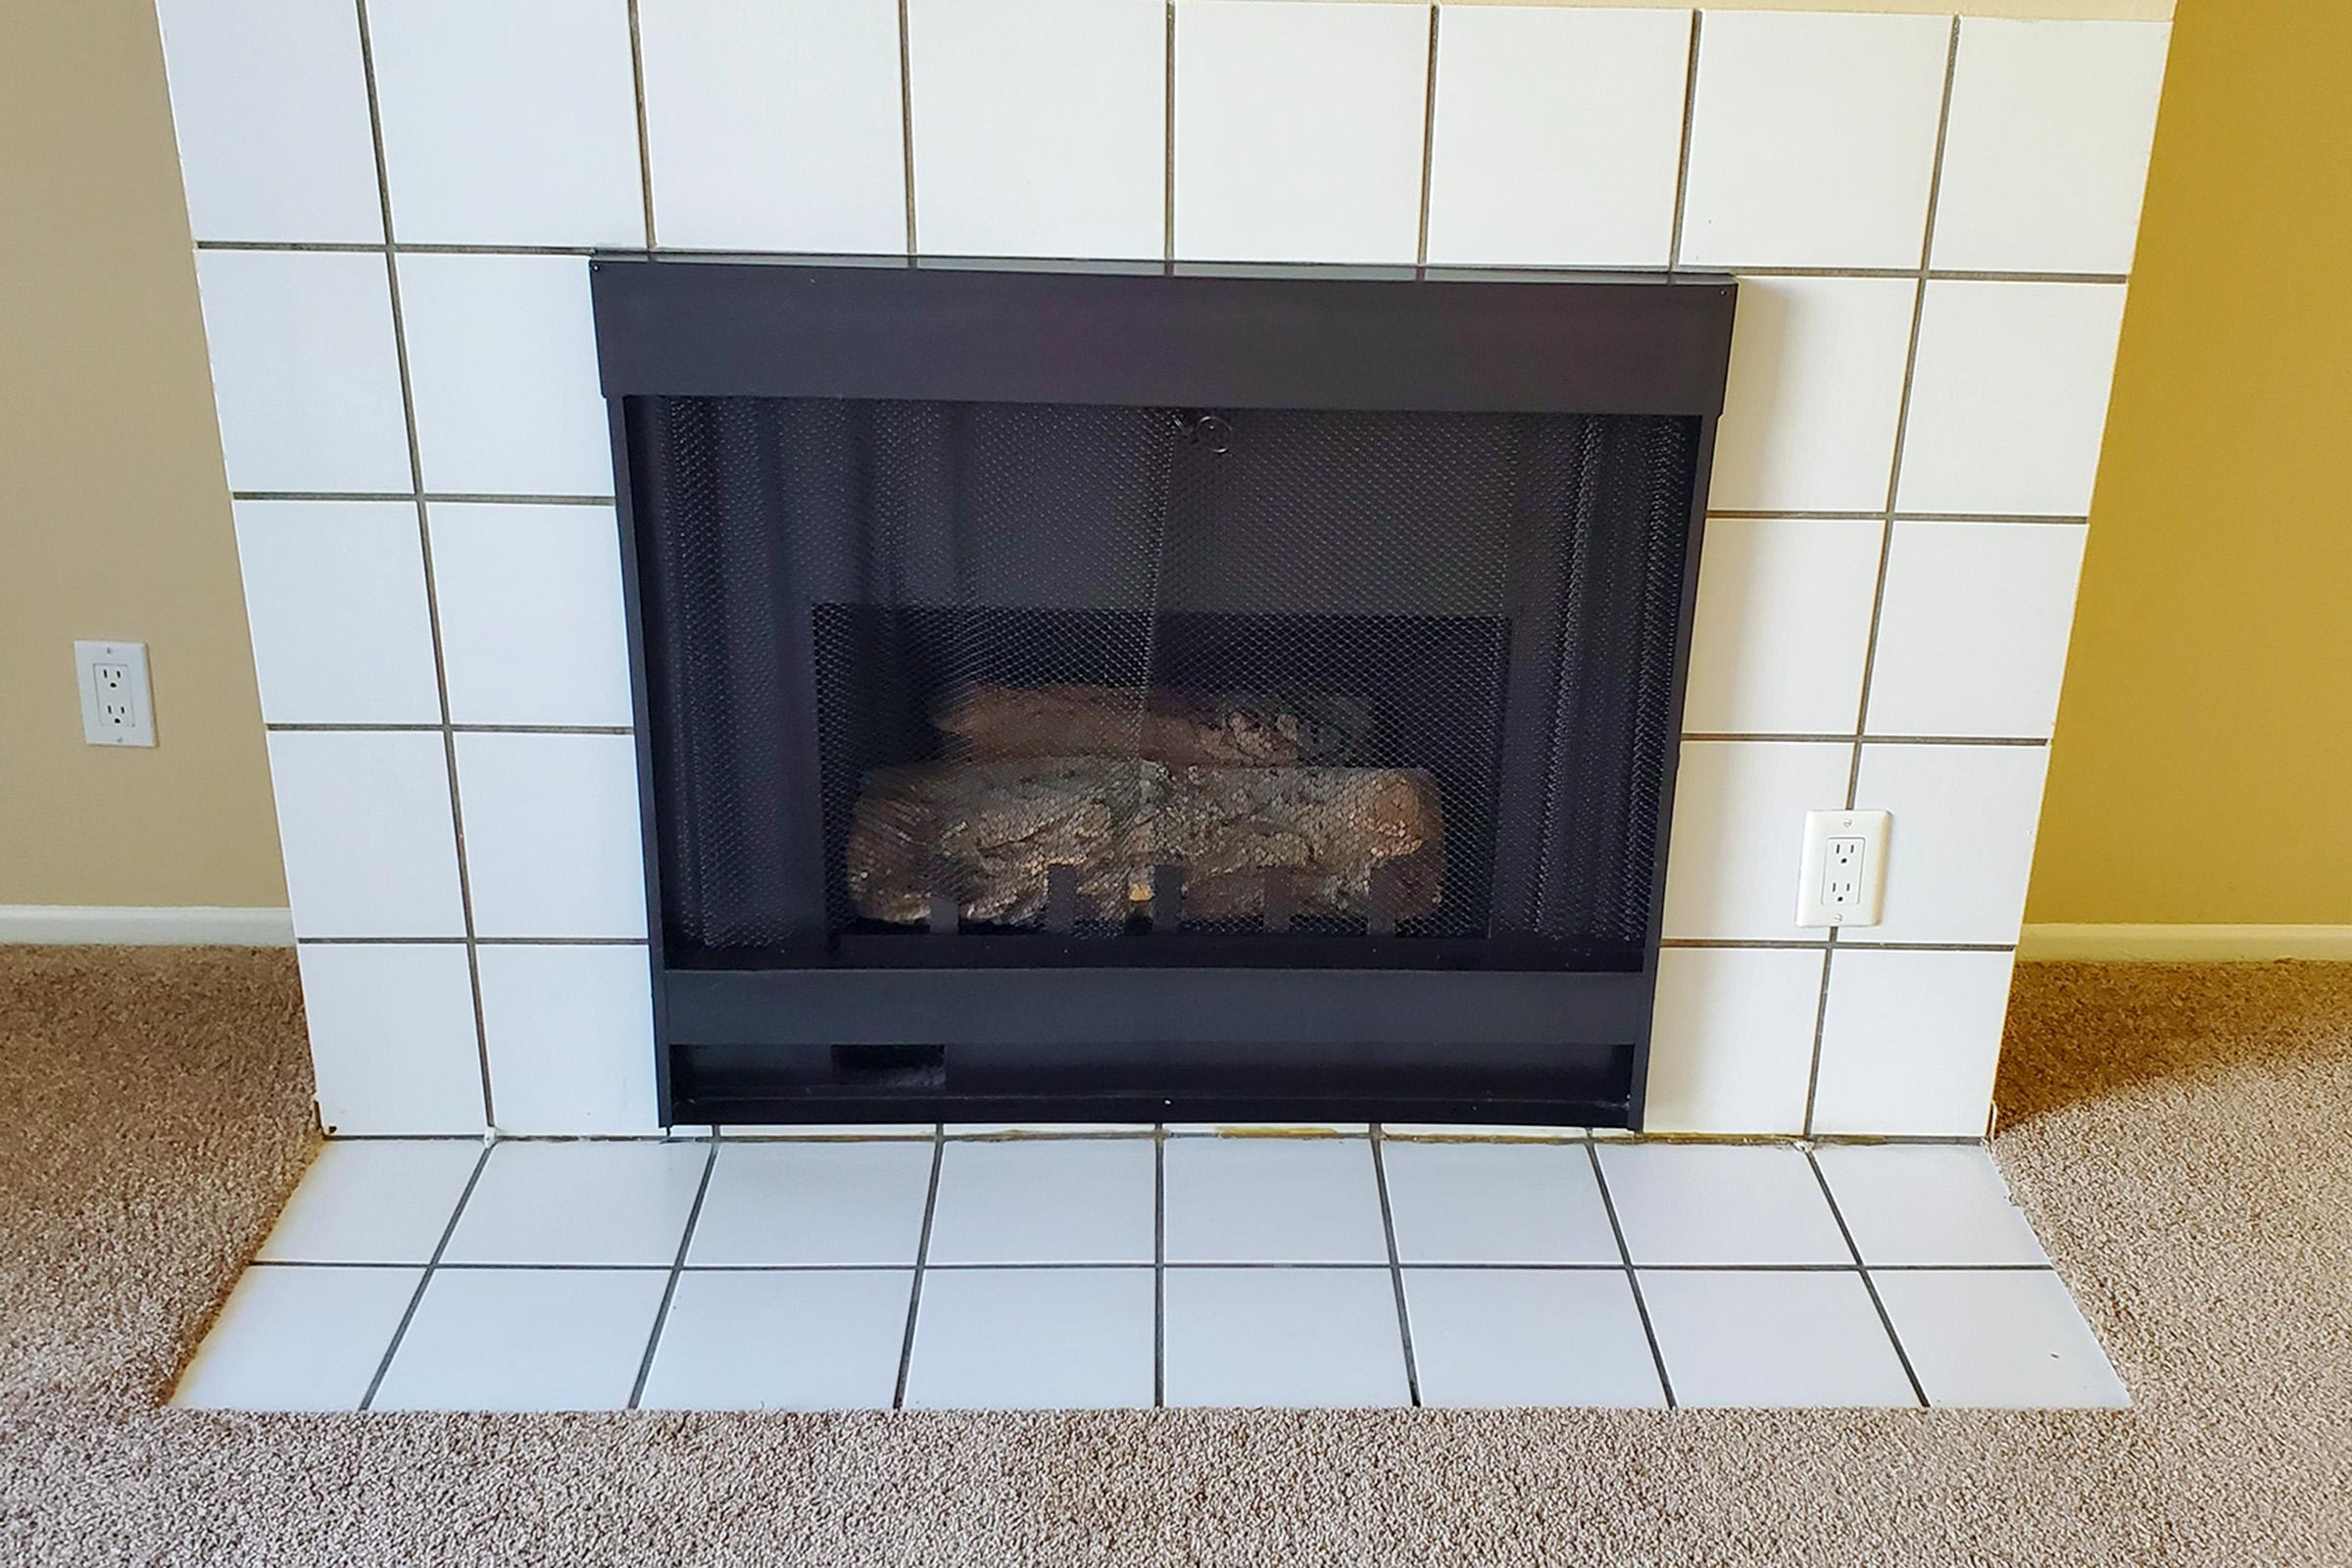 a stove top oven sitting next to a fireplace